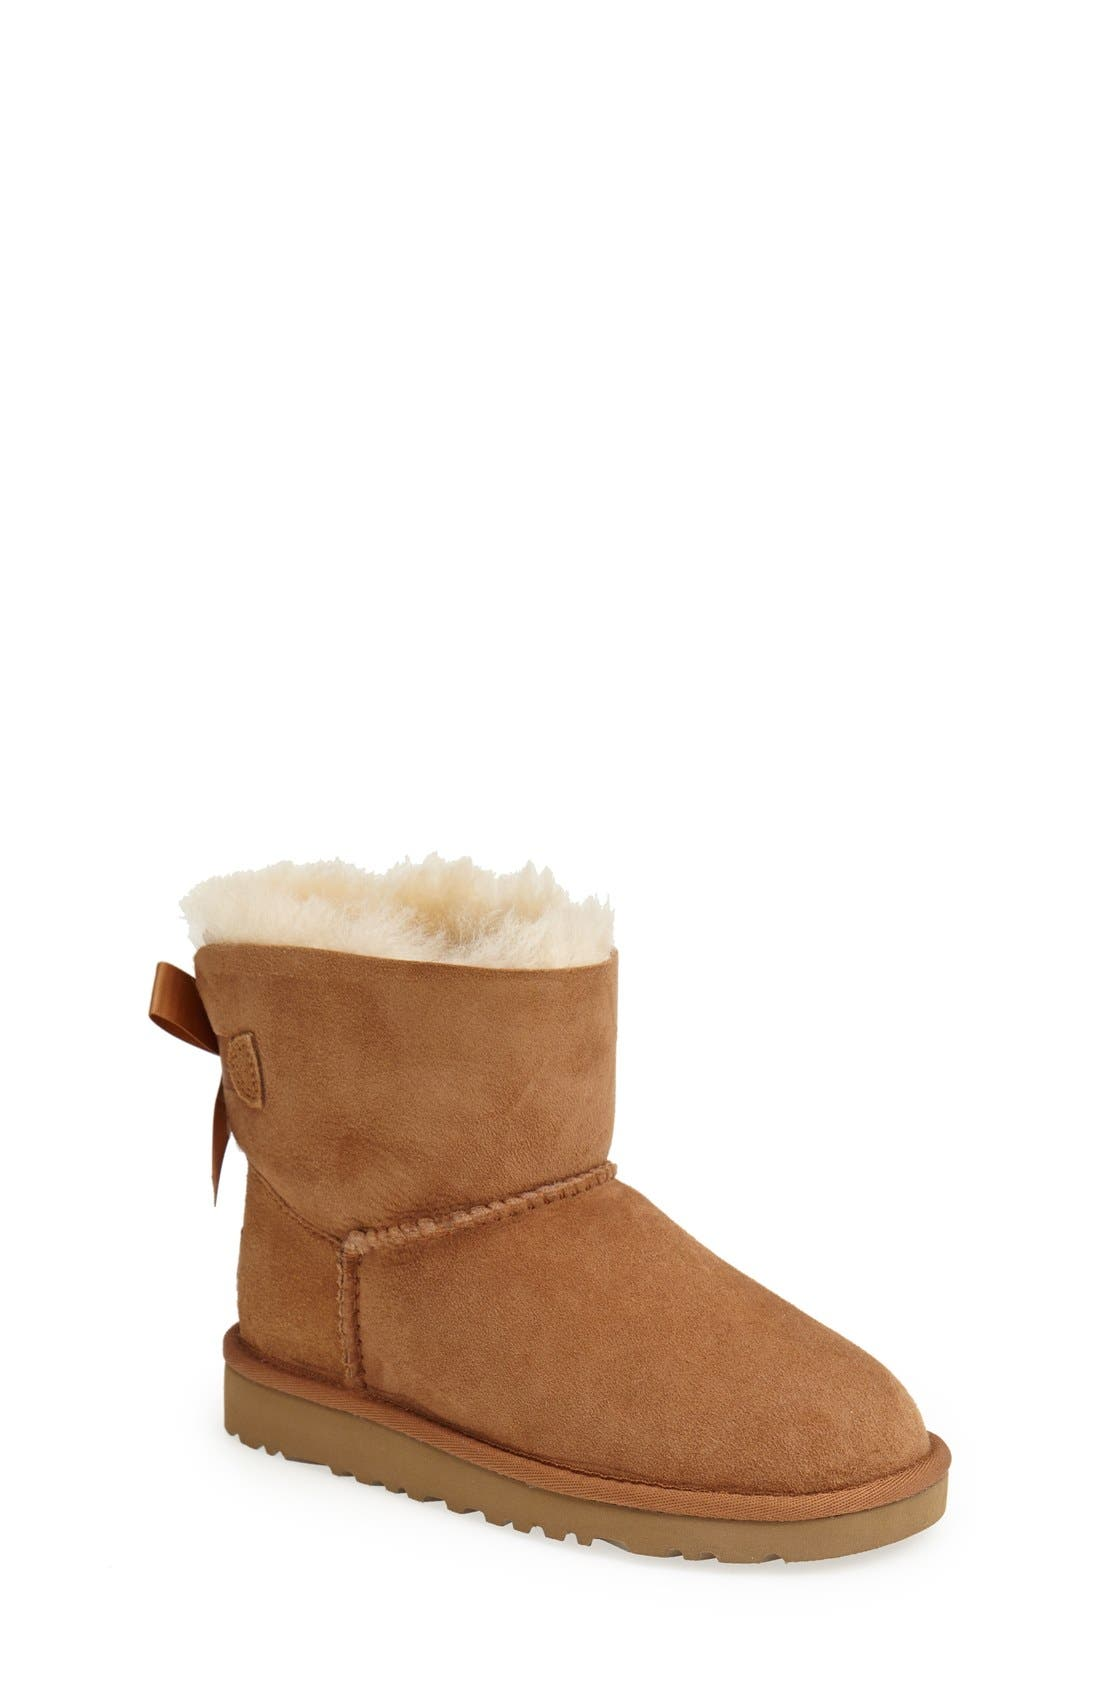 Alternate Image 1 Selected - UGG® Mini Bailey Bow Boot (Walker, Toddler, Little Kid & Big Kid)